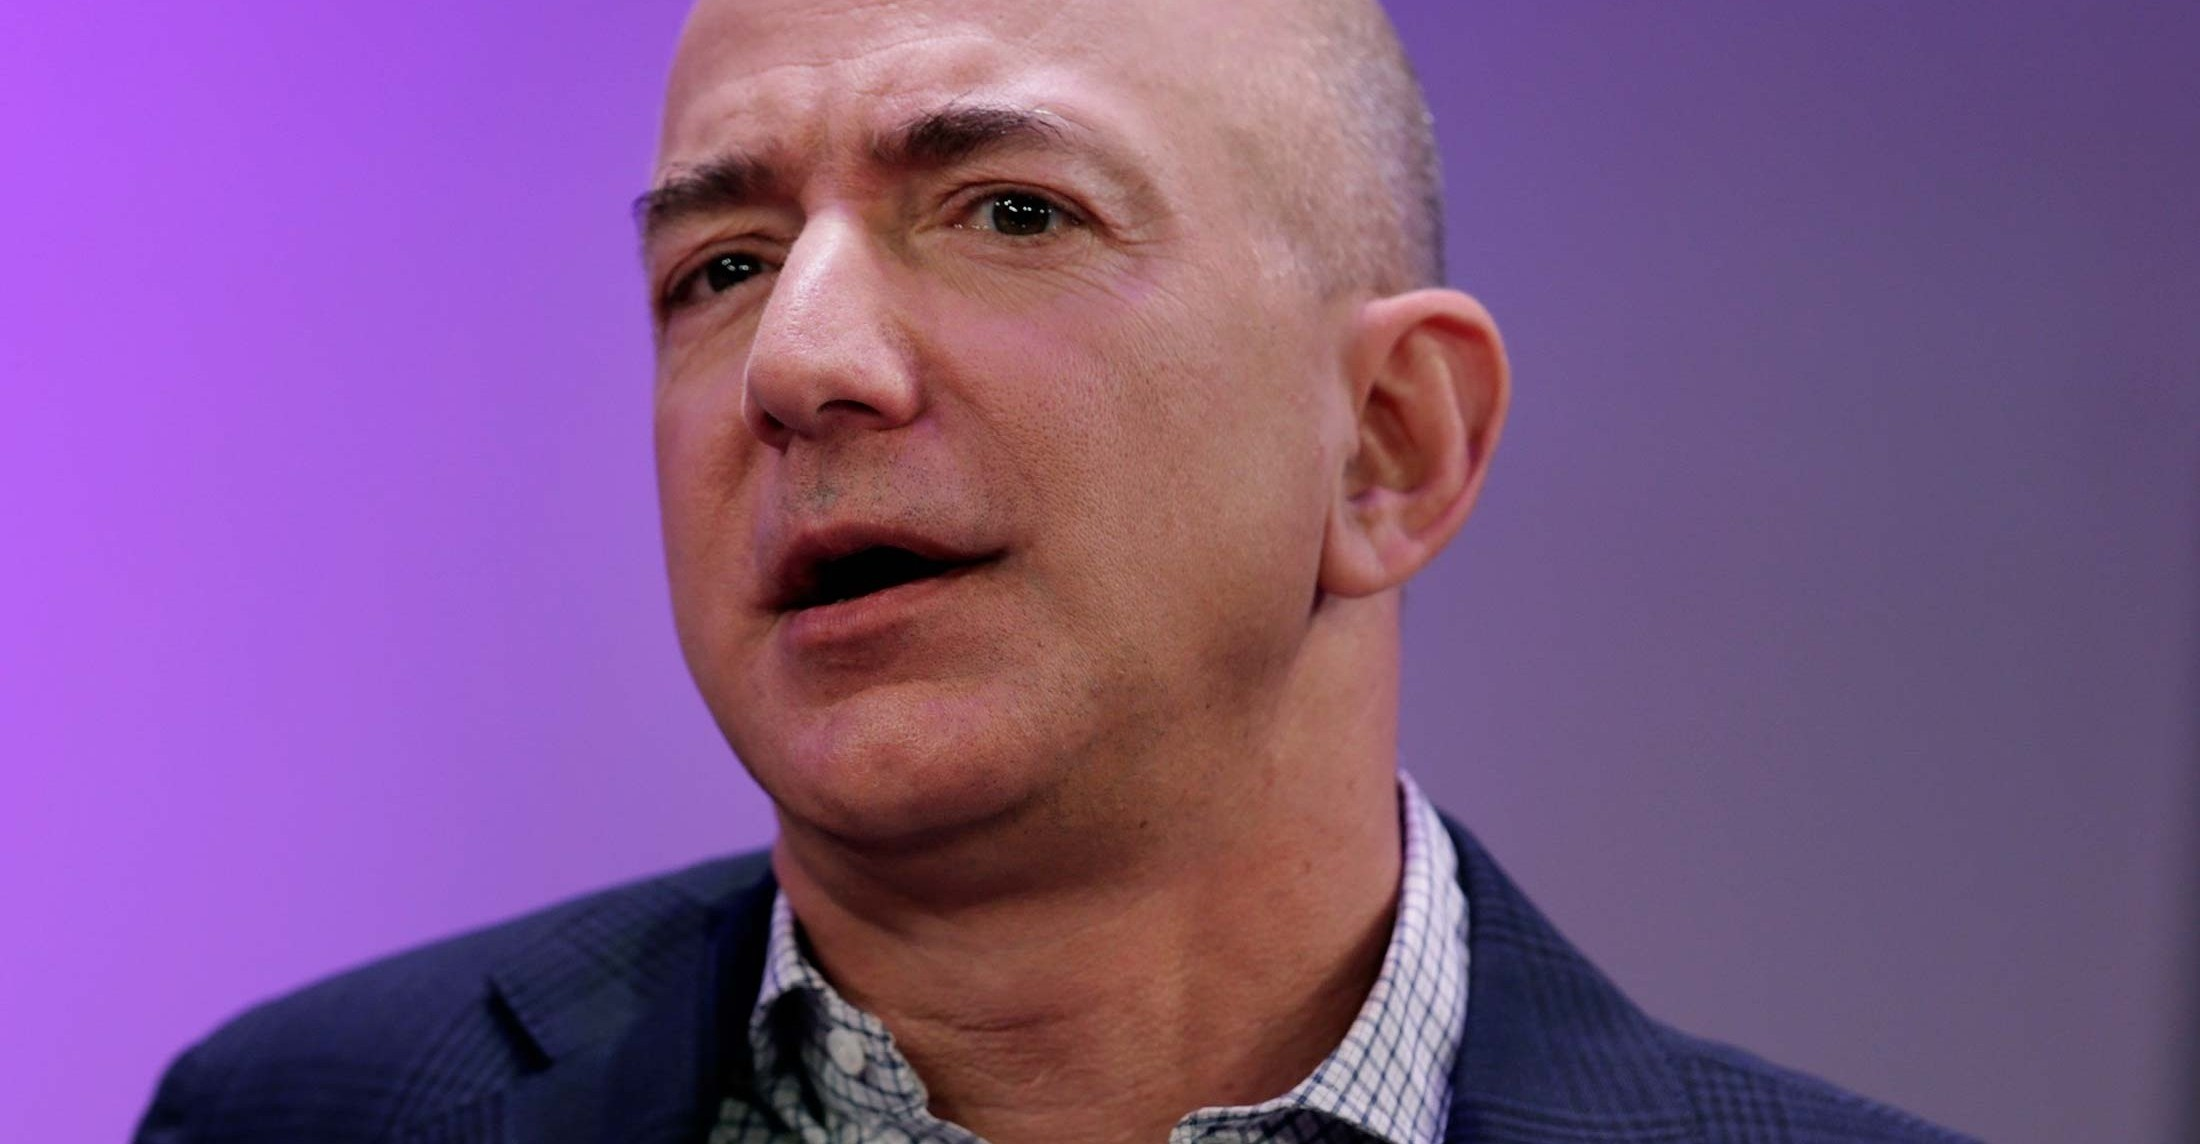 Software Now Predicts Company Performance from CEOs' Facial Expressions